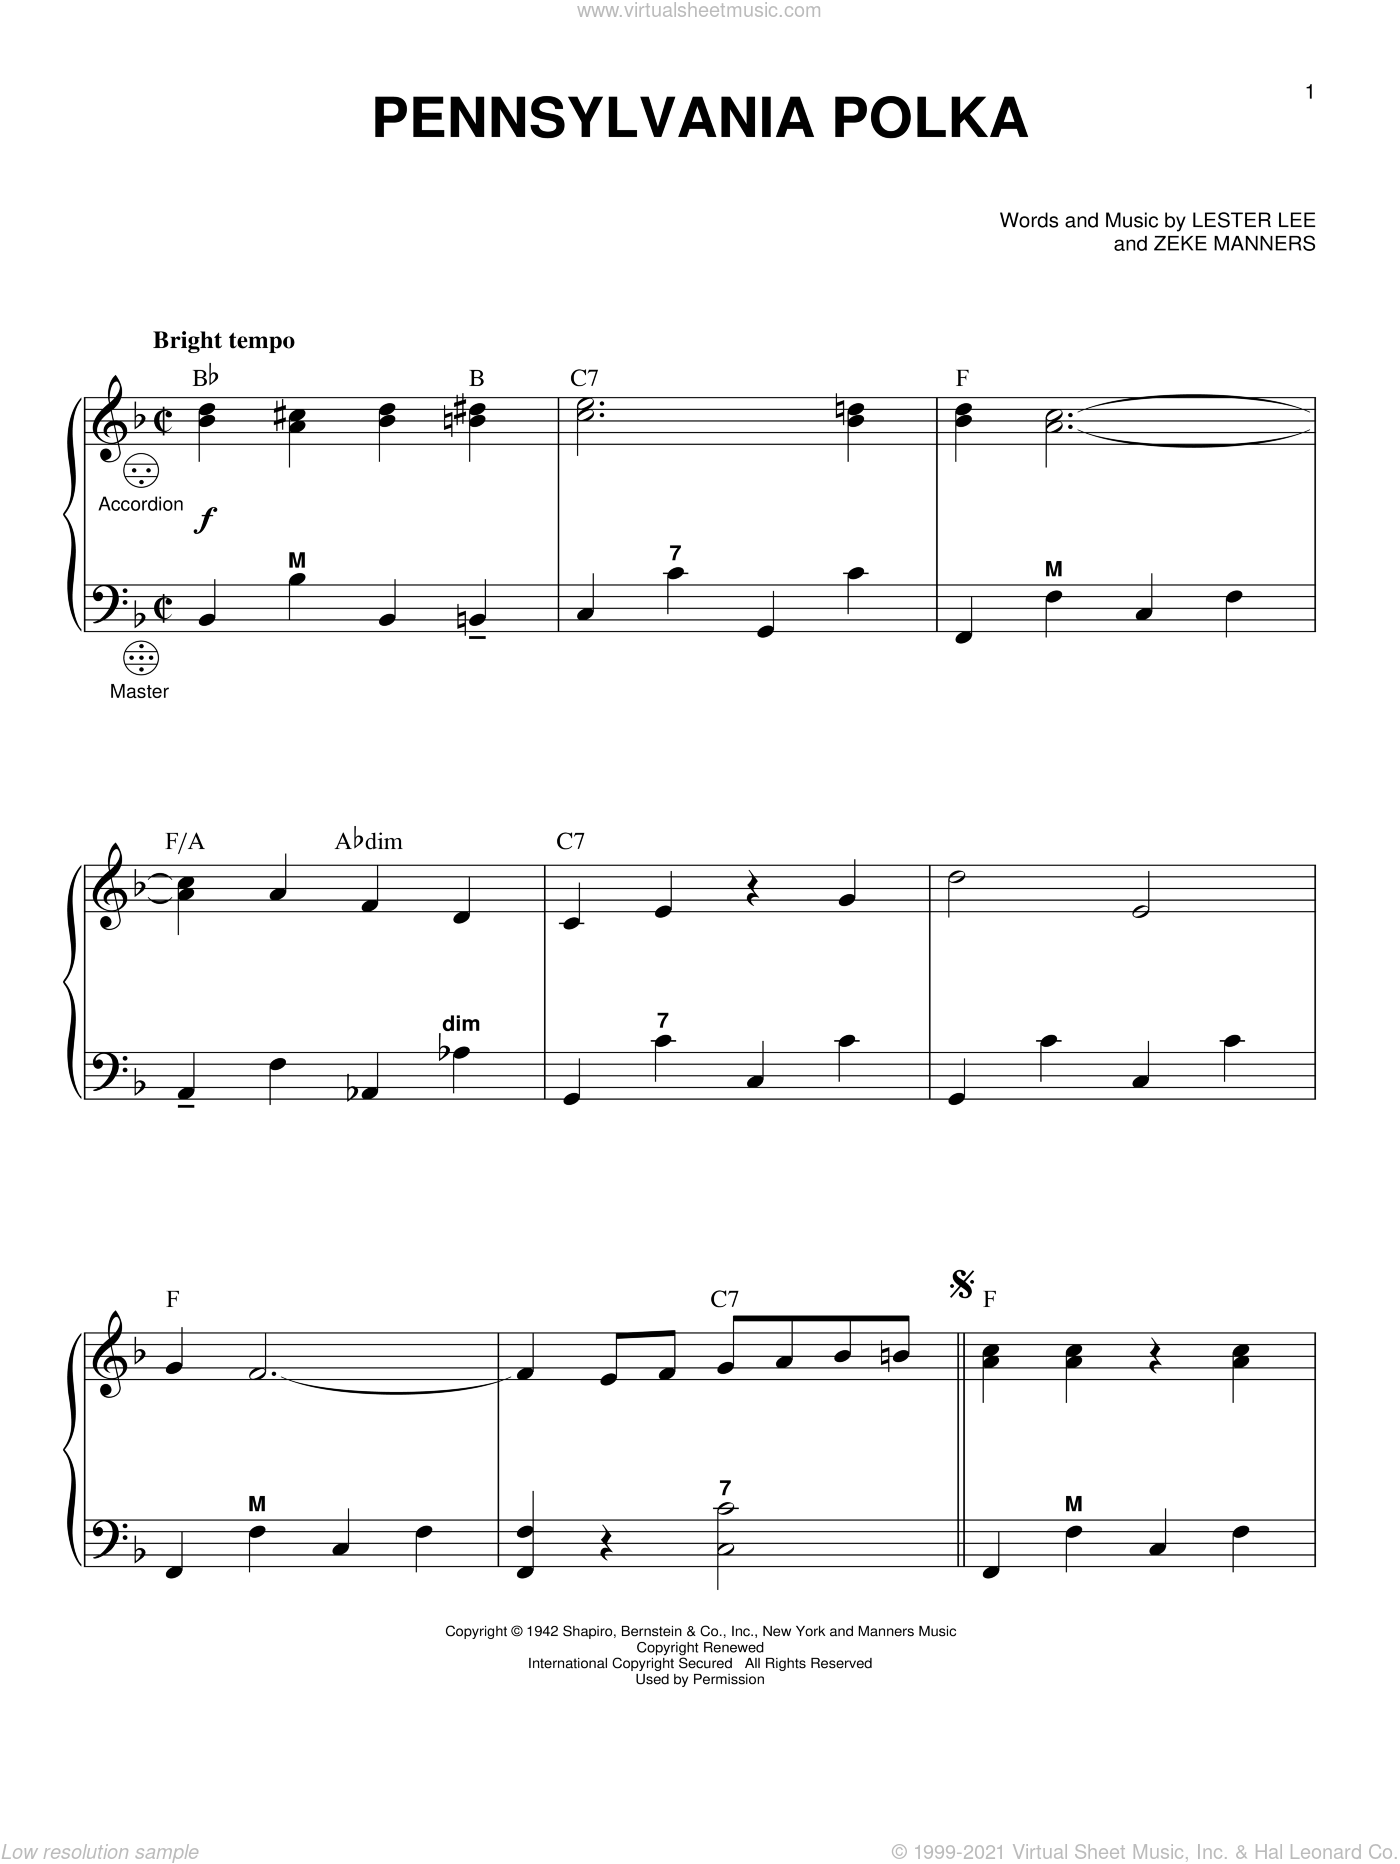 Pennsylvania Polka sheet music for accordion by Lester Lee and Zeke Manners, intermediate skill level